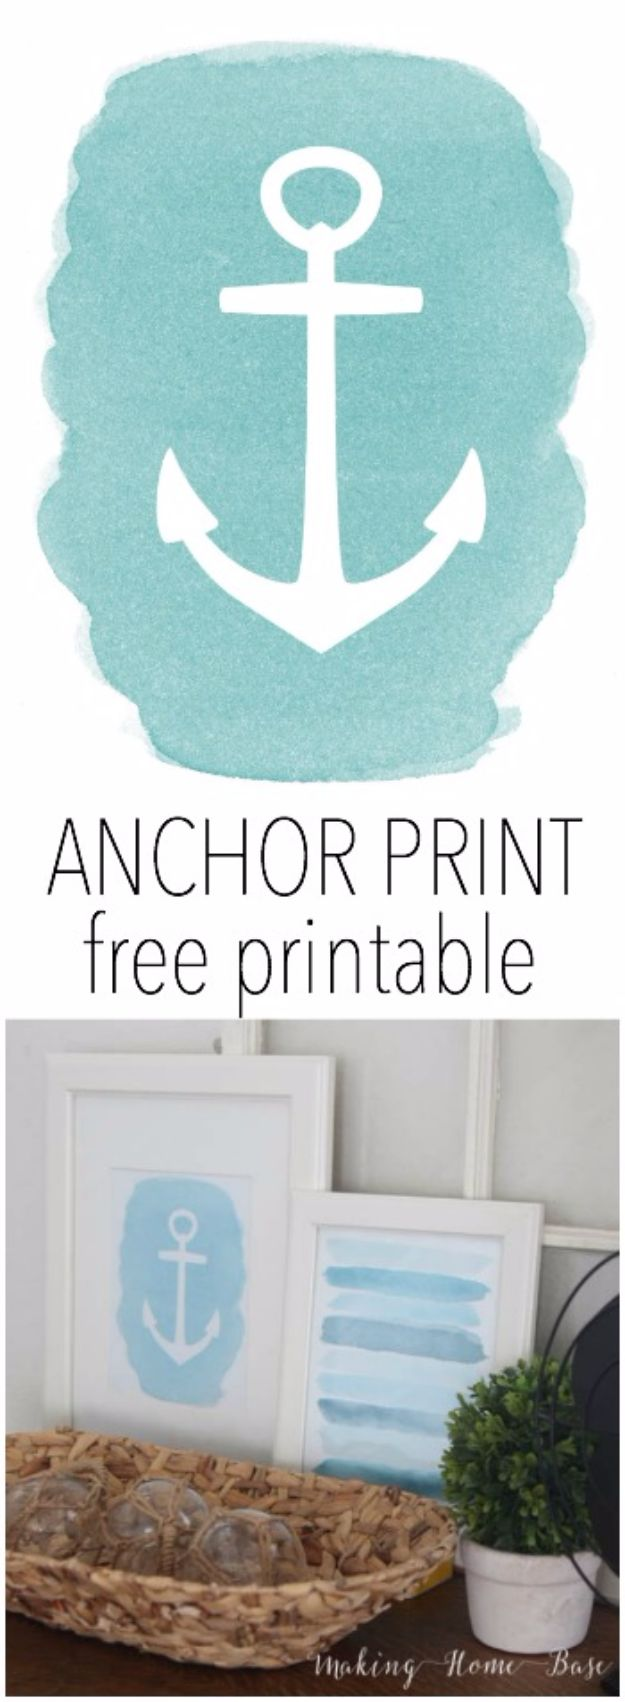 Best Free Printables For Your Walls - Anchor Print Free Printable - Free Prints for Wall Art and Picture to Print for Home and Bedroom Decor - Crafts to Make and Sell With Ideas for the Home, Organization #diy